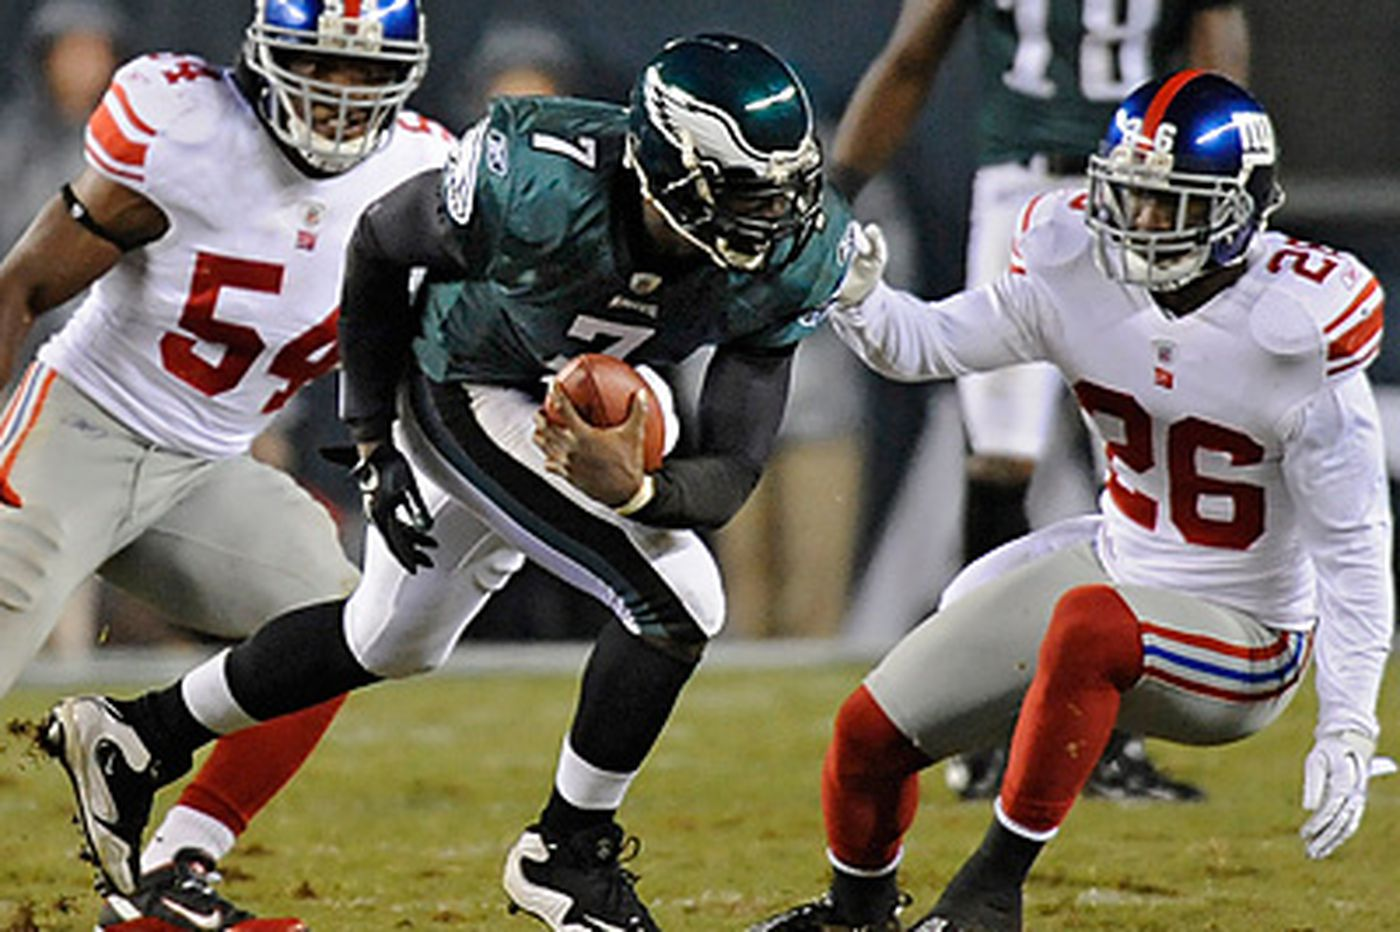 Ashley Fox: Giants look to contain Vick again